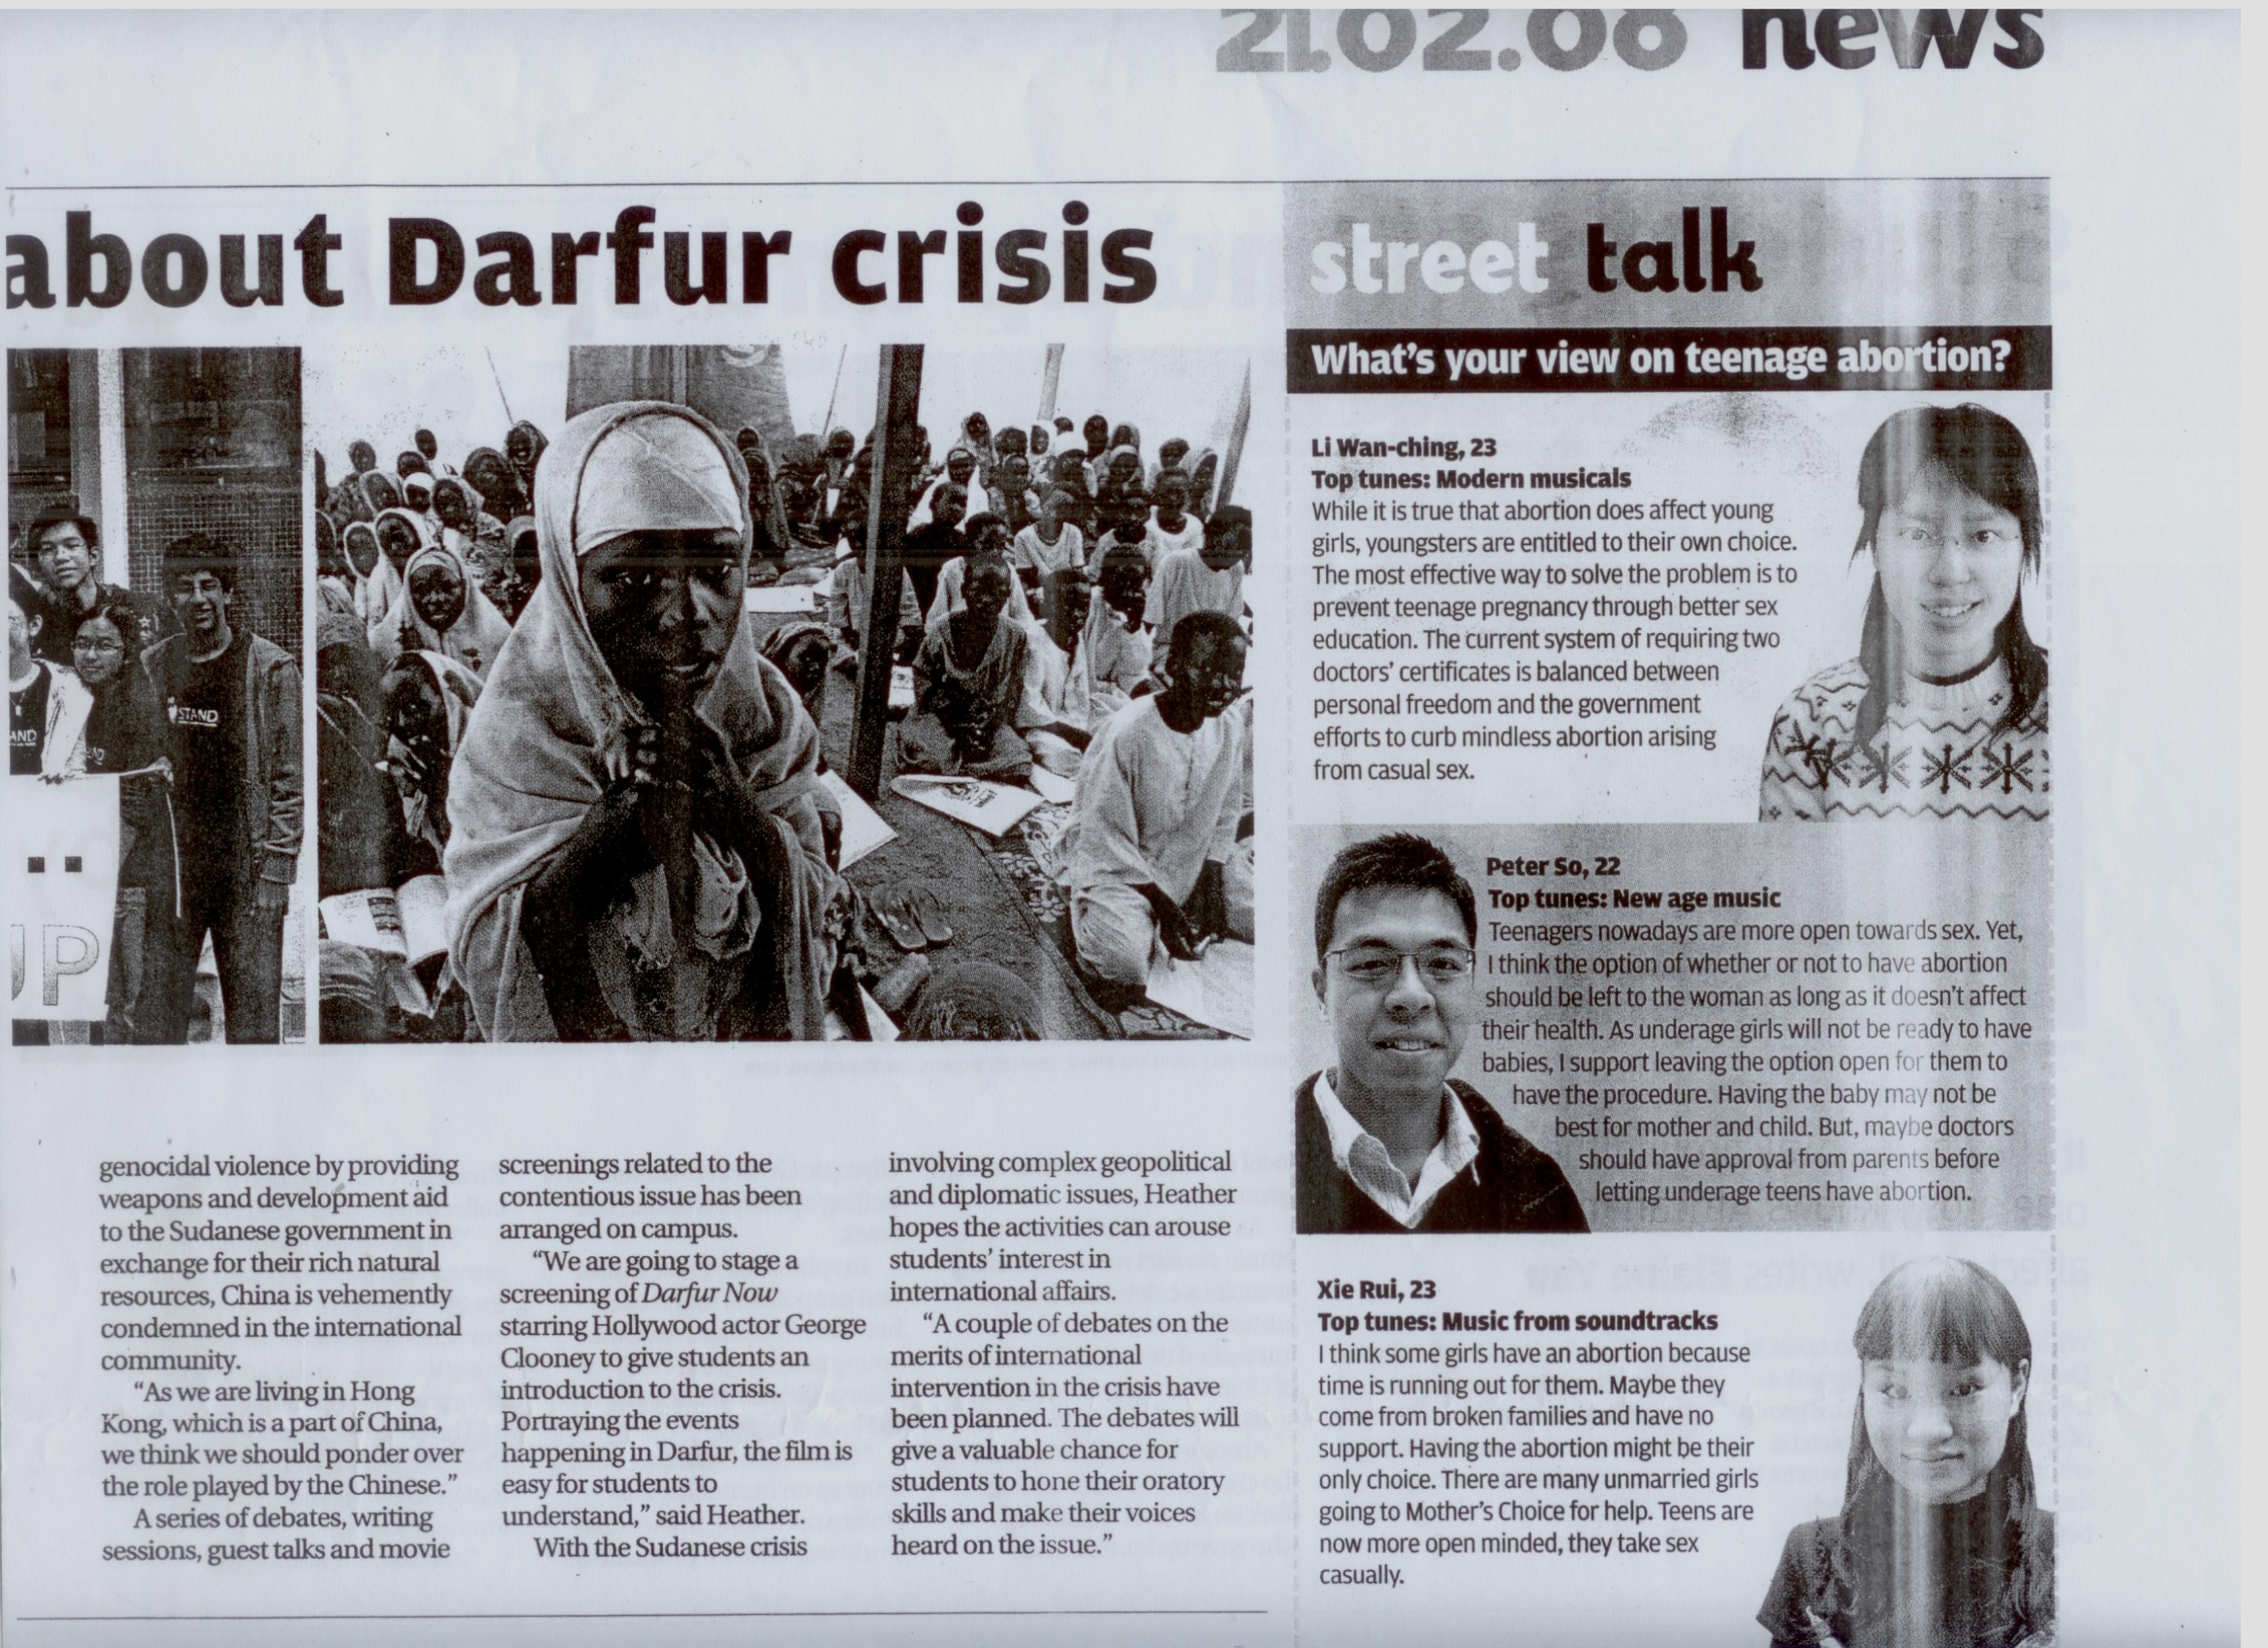 Genocide within Darfur